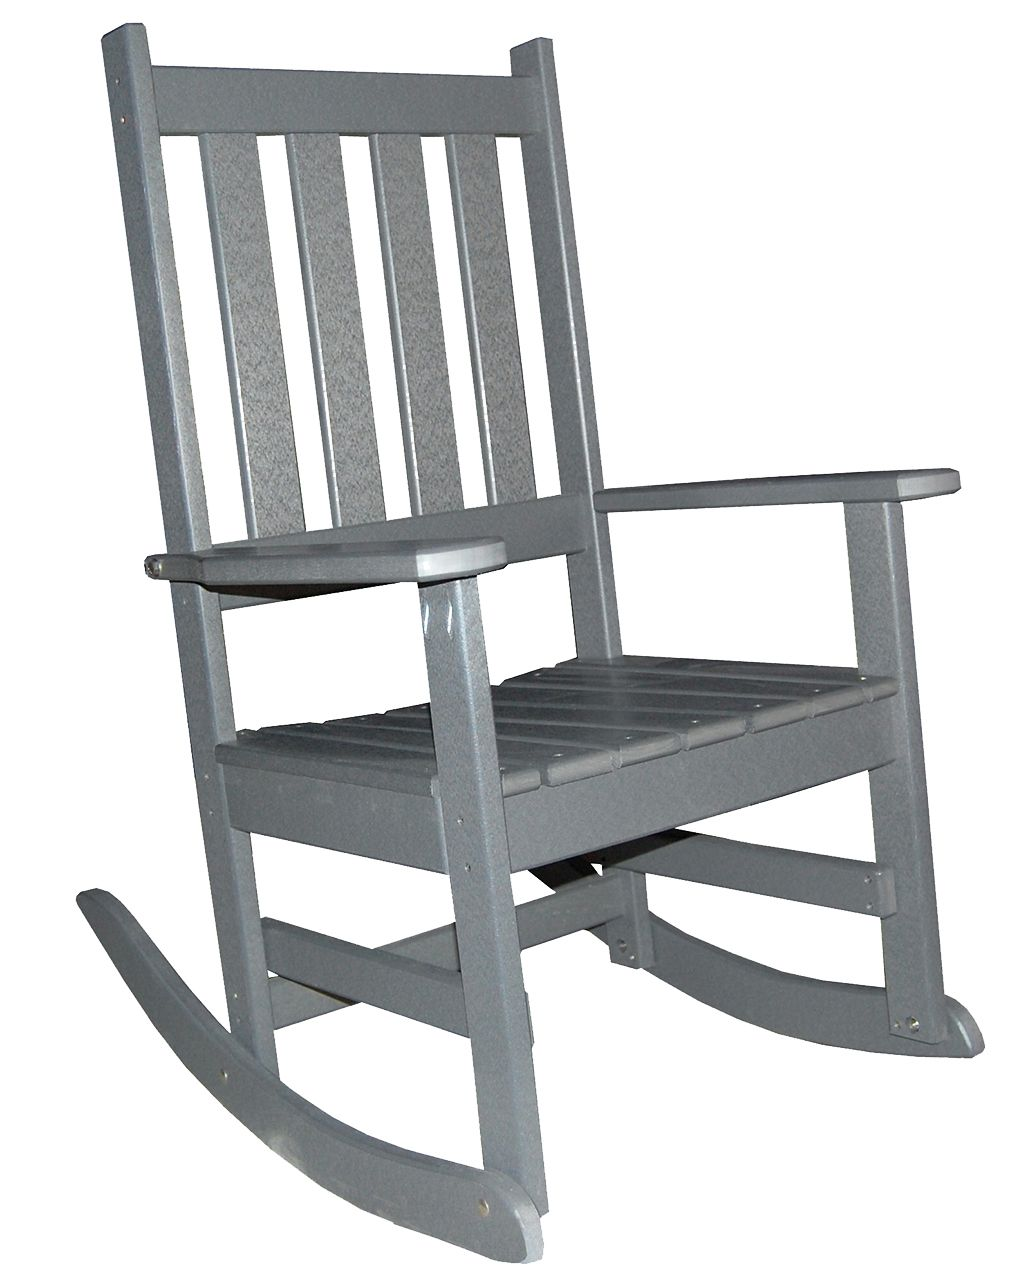 Enjoyable 22 Heritage Rocker Shown In Grey Polytuf Lumber Outdoor Camellatalisay Diy Chair Ideas Camellatalisaycom